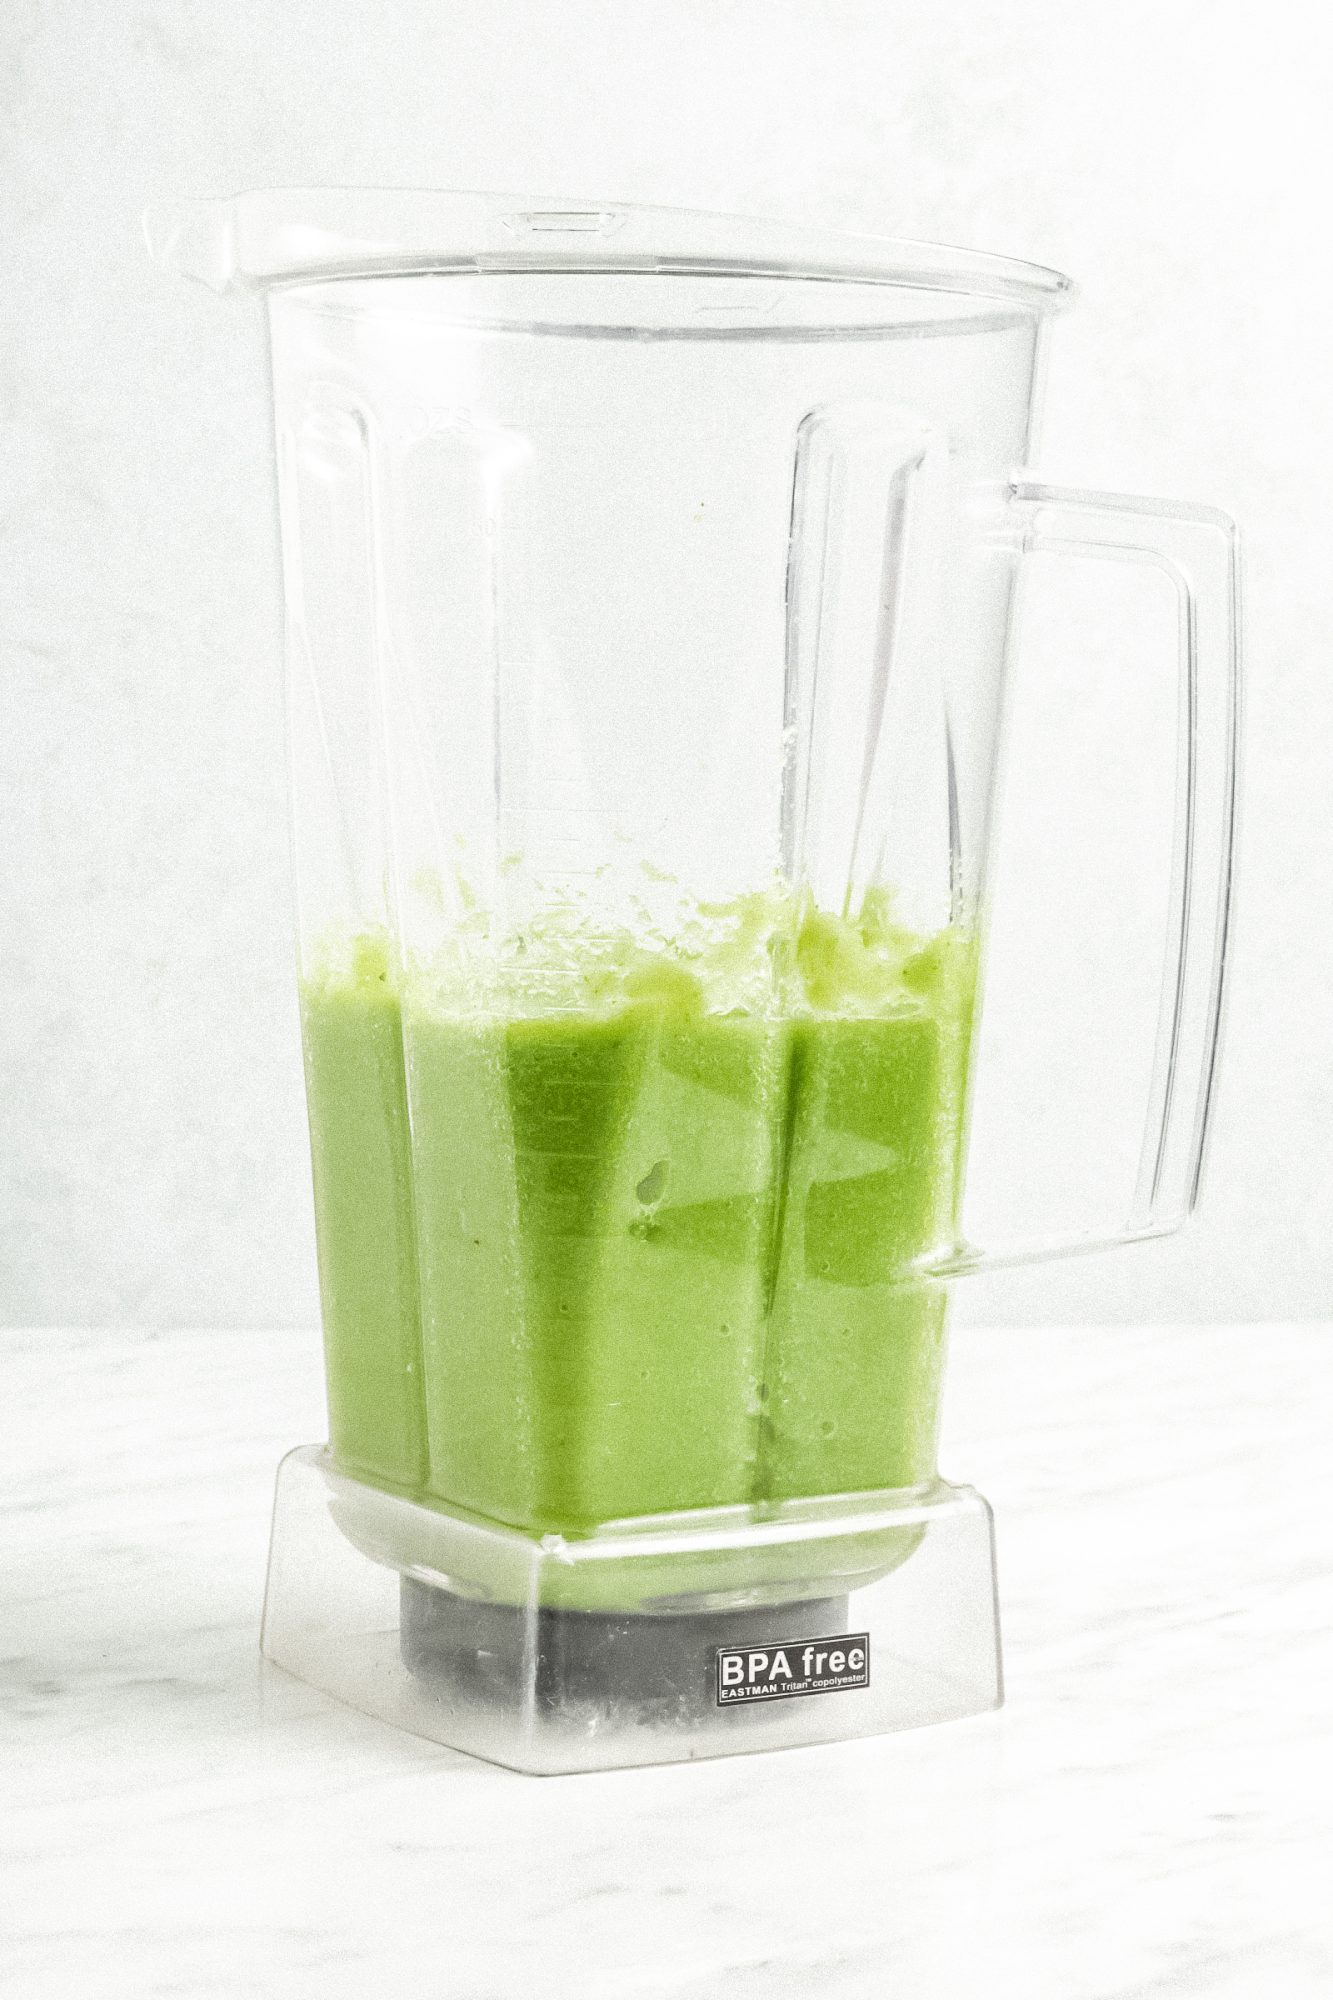 Blender Green Juice in Blender